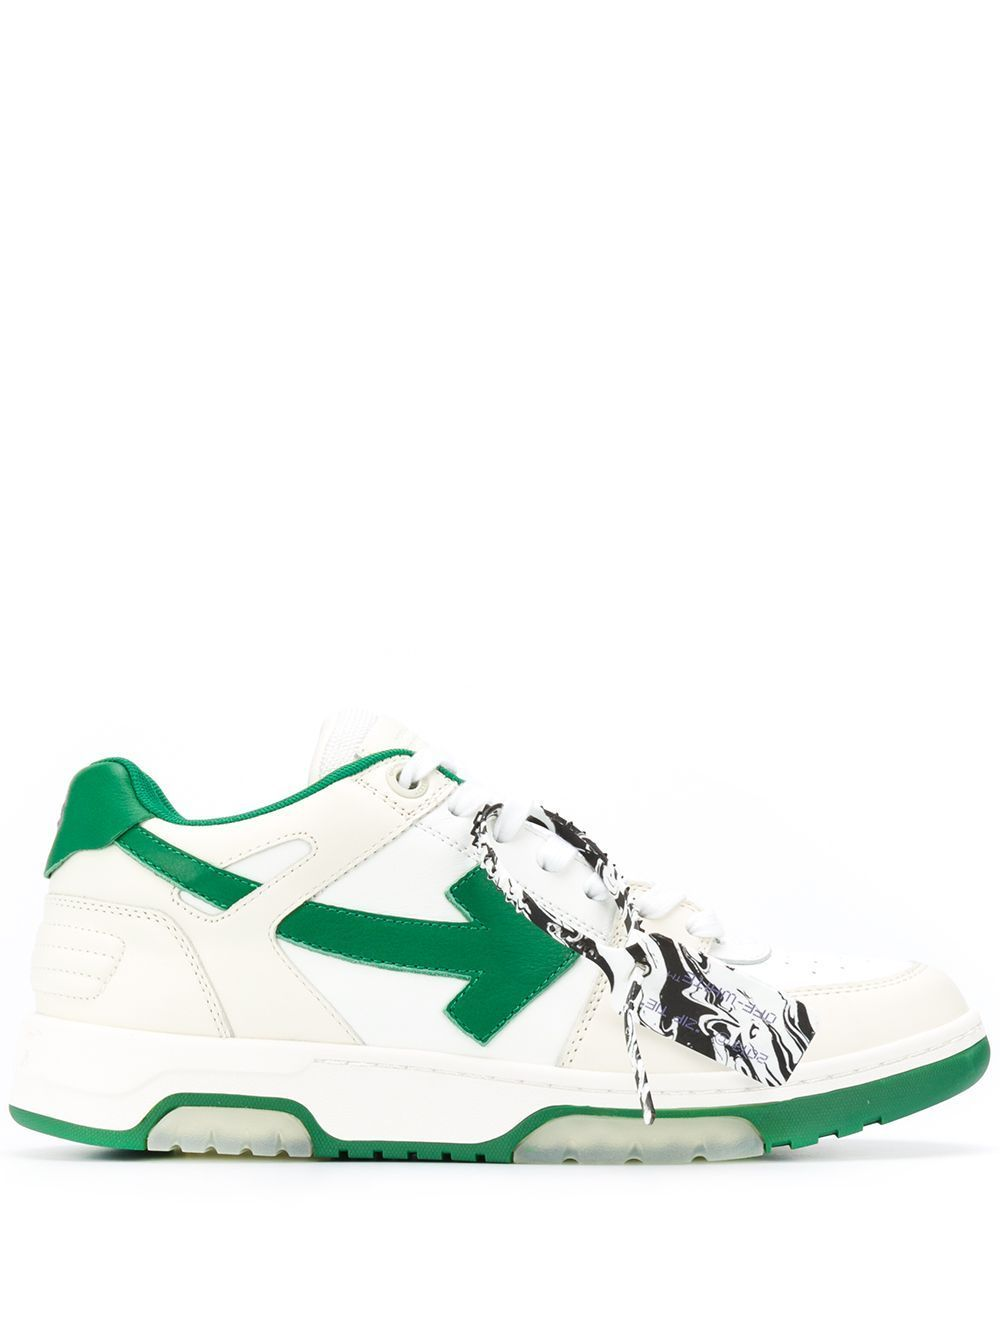 OFF-WHITE Out Of Office White/Green